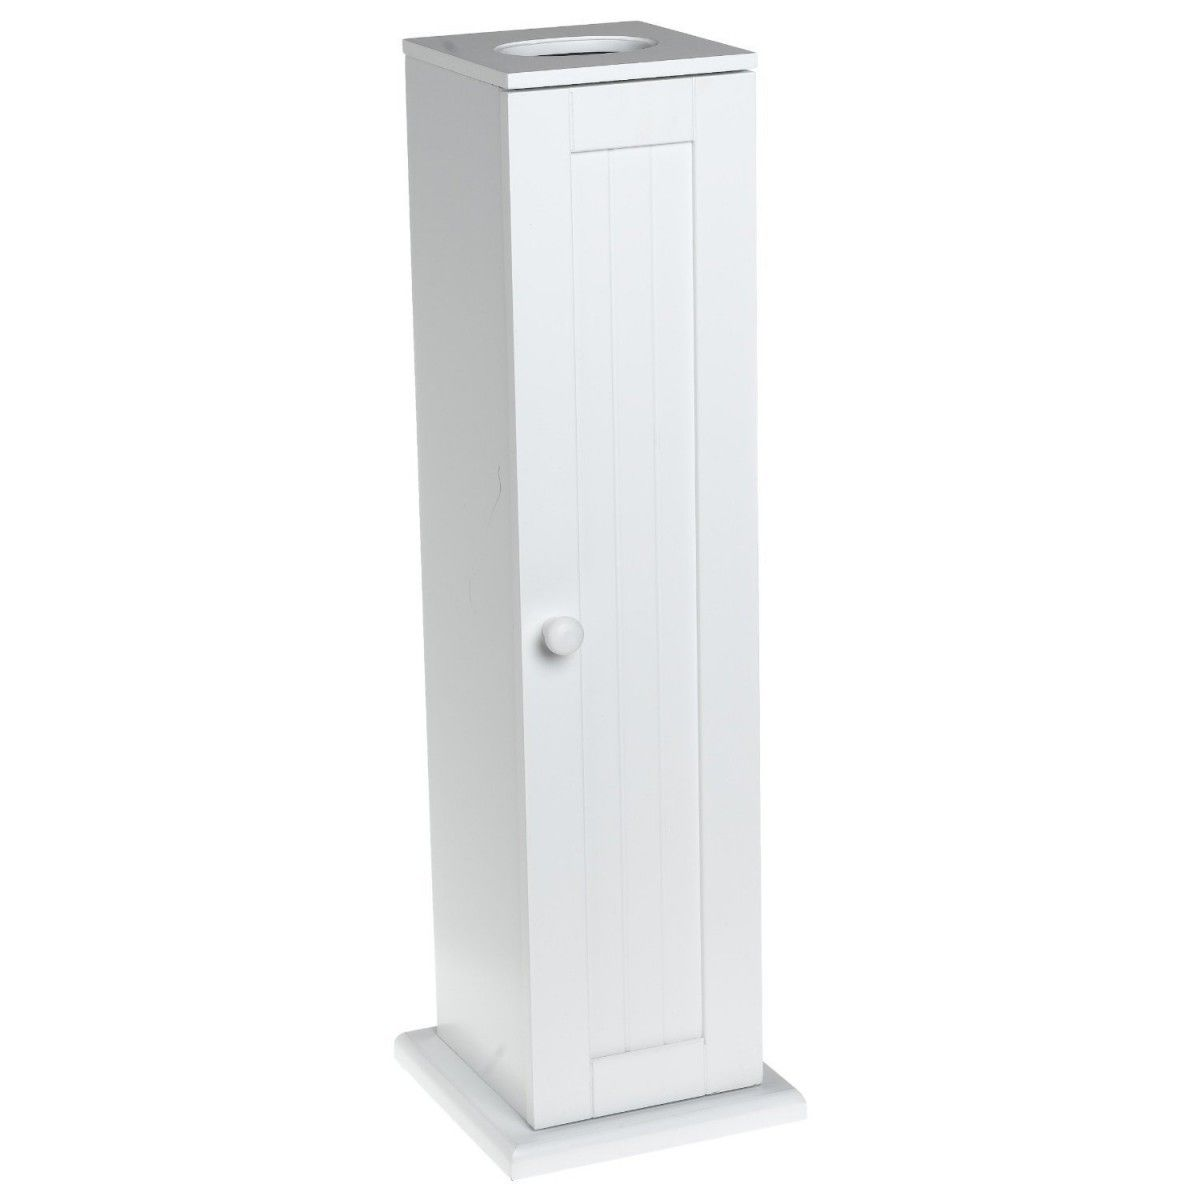 Bennington Country Cottage White Toilet Paper Cabinet Holder Tower Free Standing With Images Bathroom Interior Design Storage Wood Toilet Paper Holder